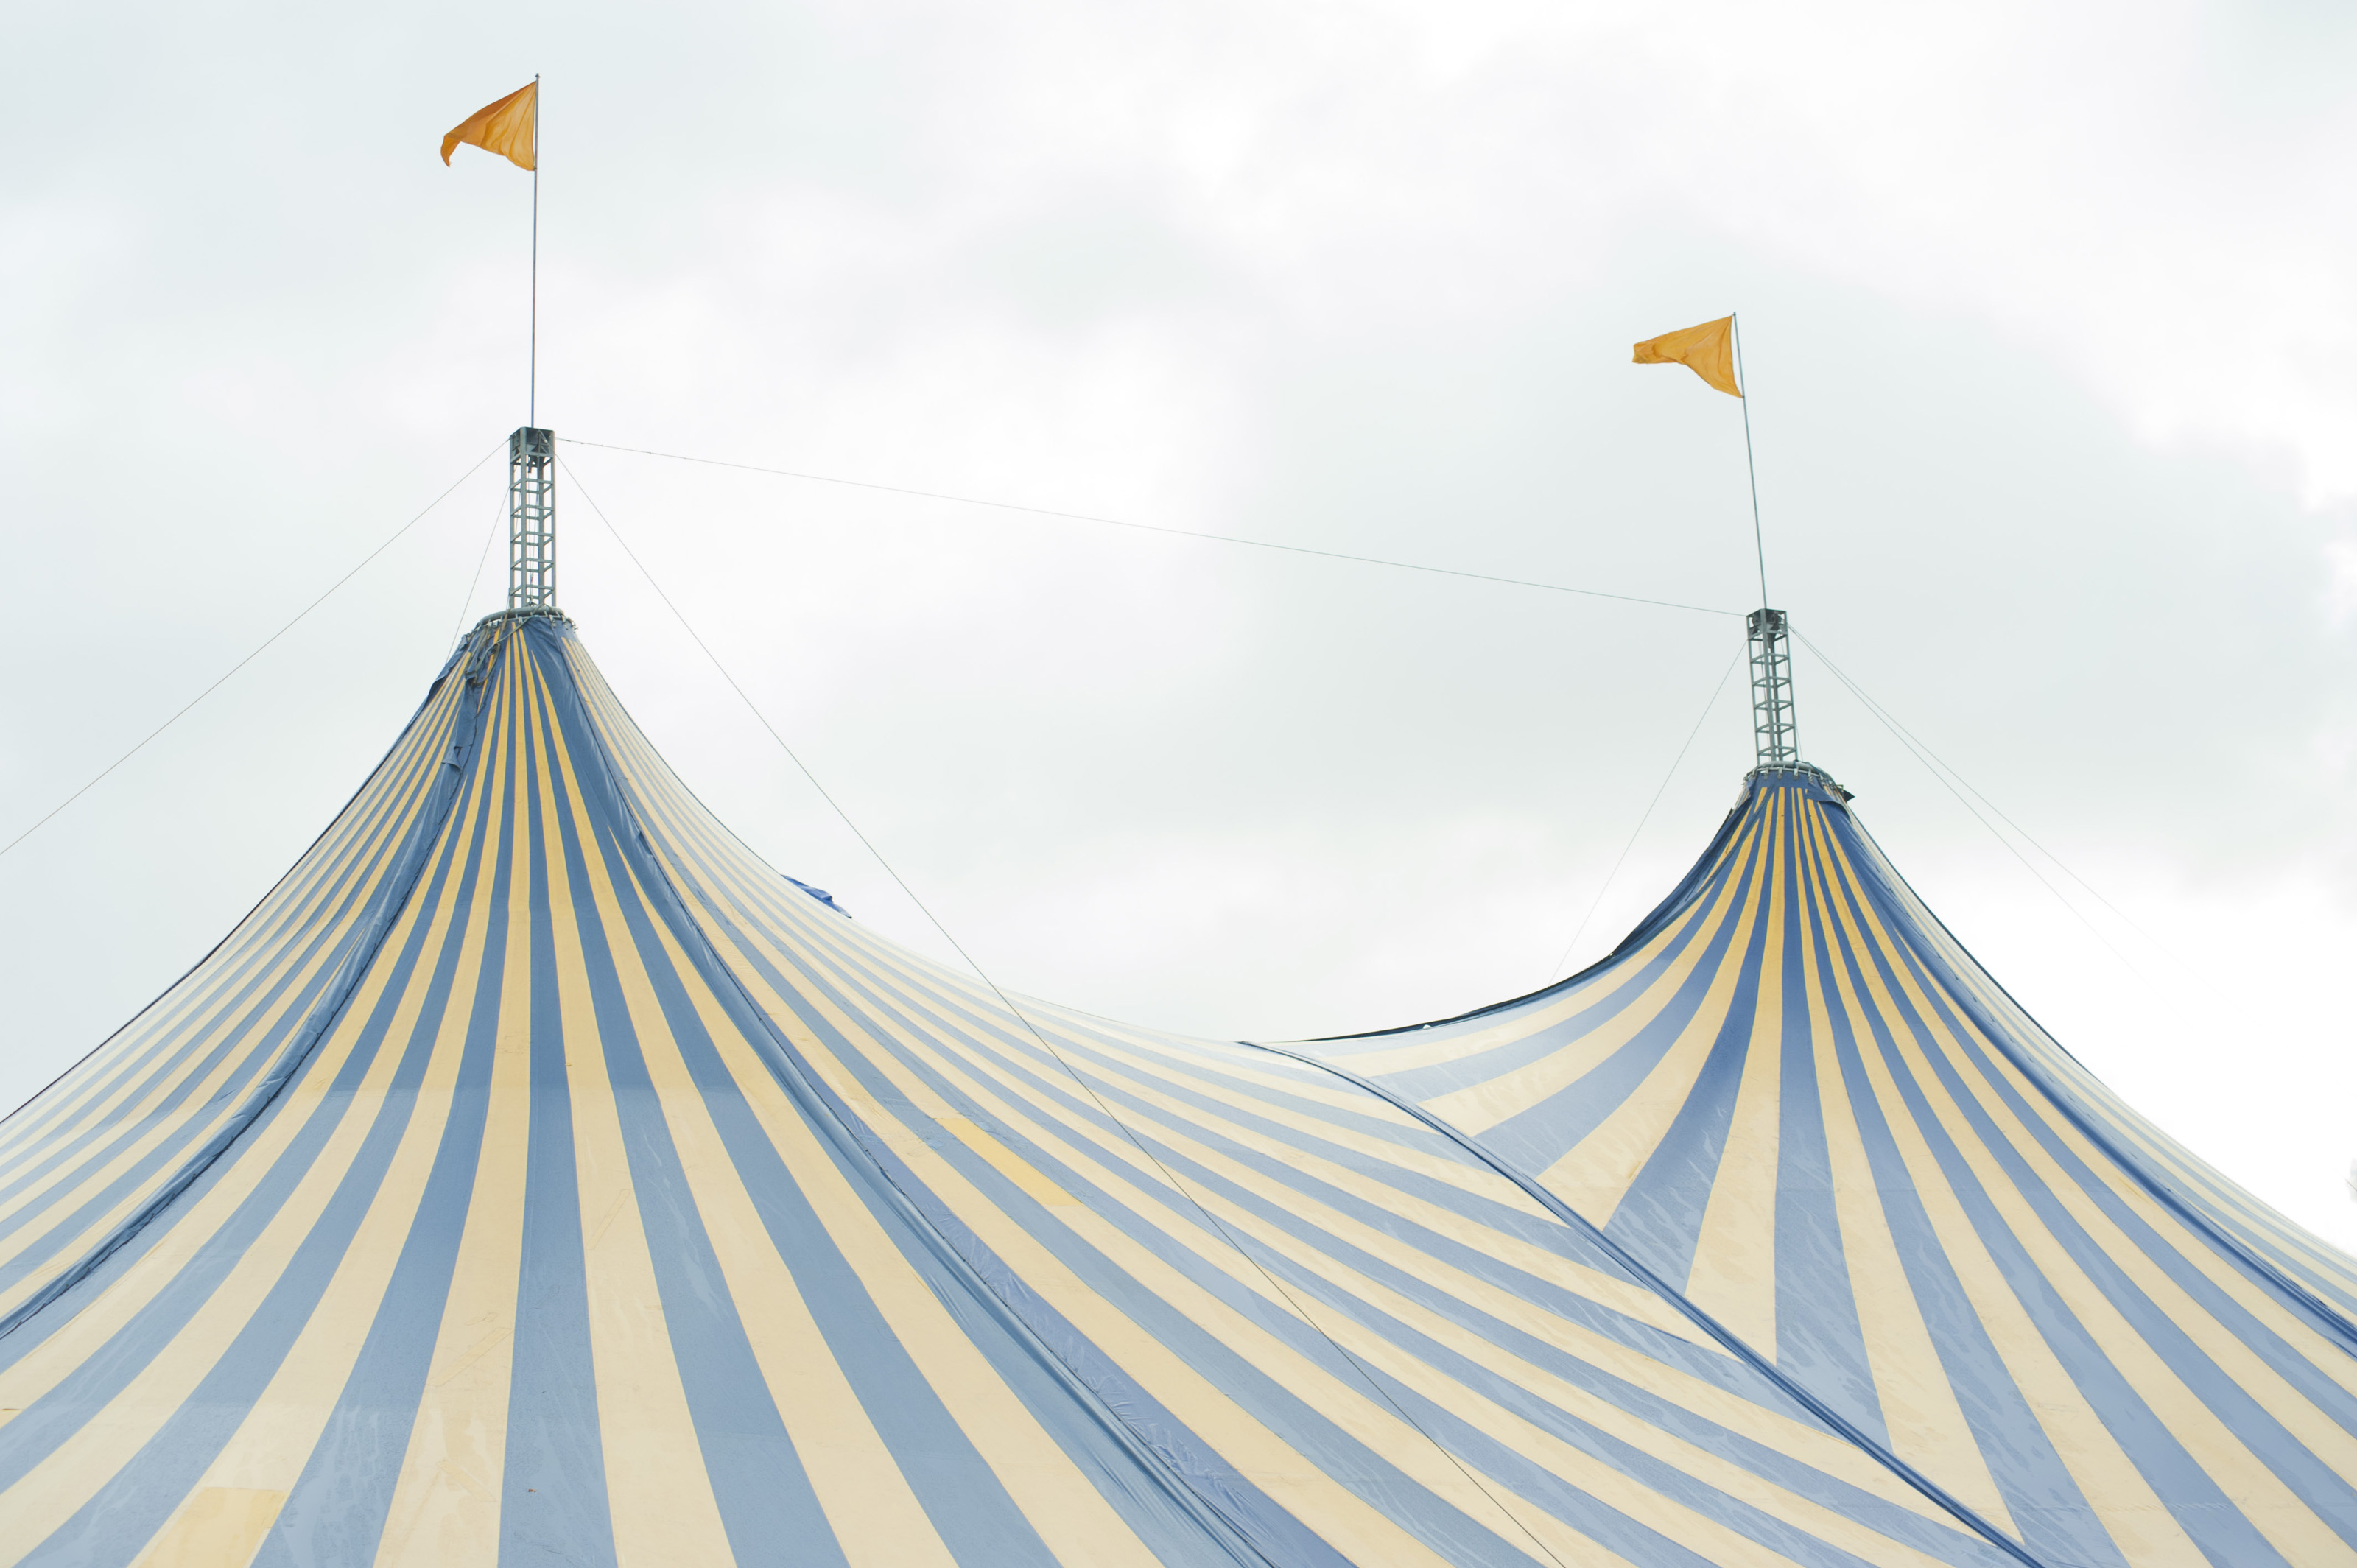 Accept License and Download Image  sc 1 st  Stockarch & Circus Big Top tent-8914 | Stockarch Free Stock Photos